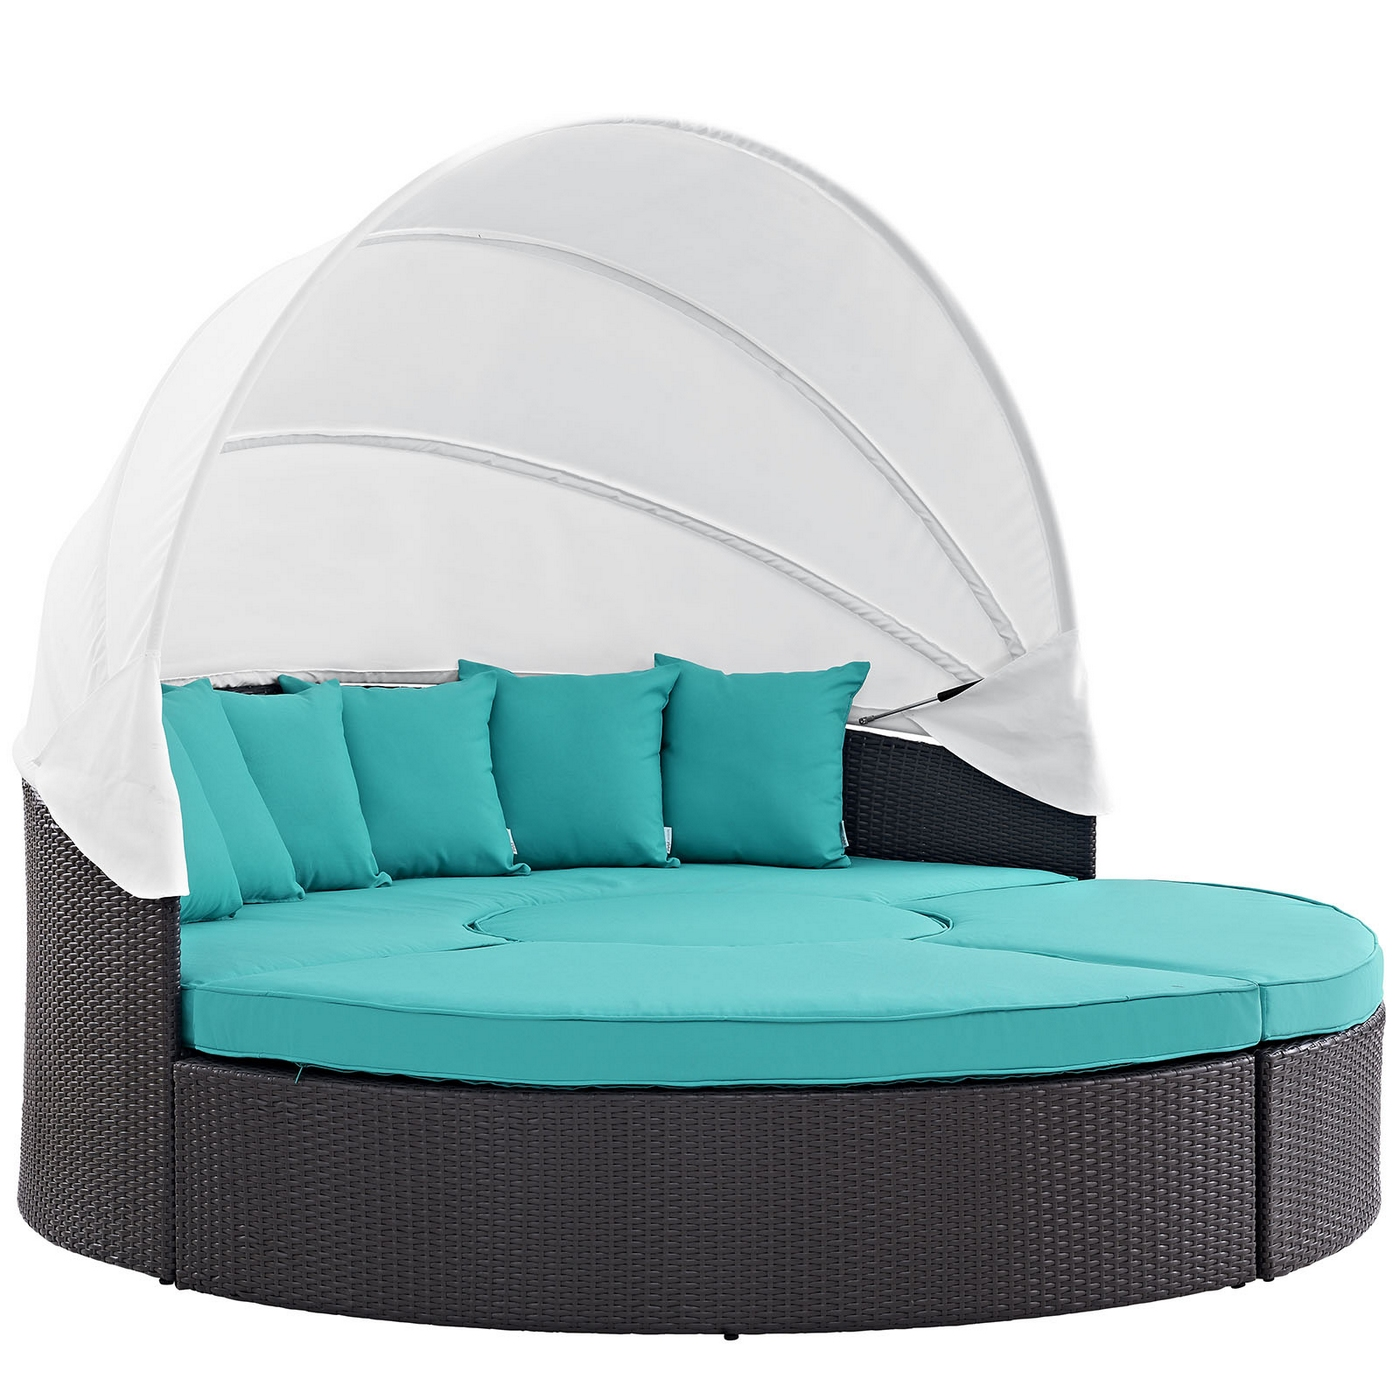 Convene Modular Outdoor Patio Round Canopy Daybed With